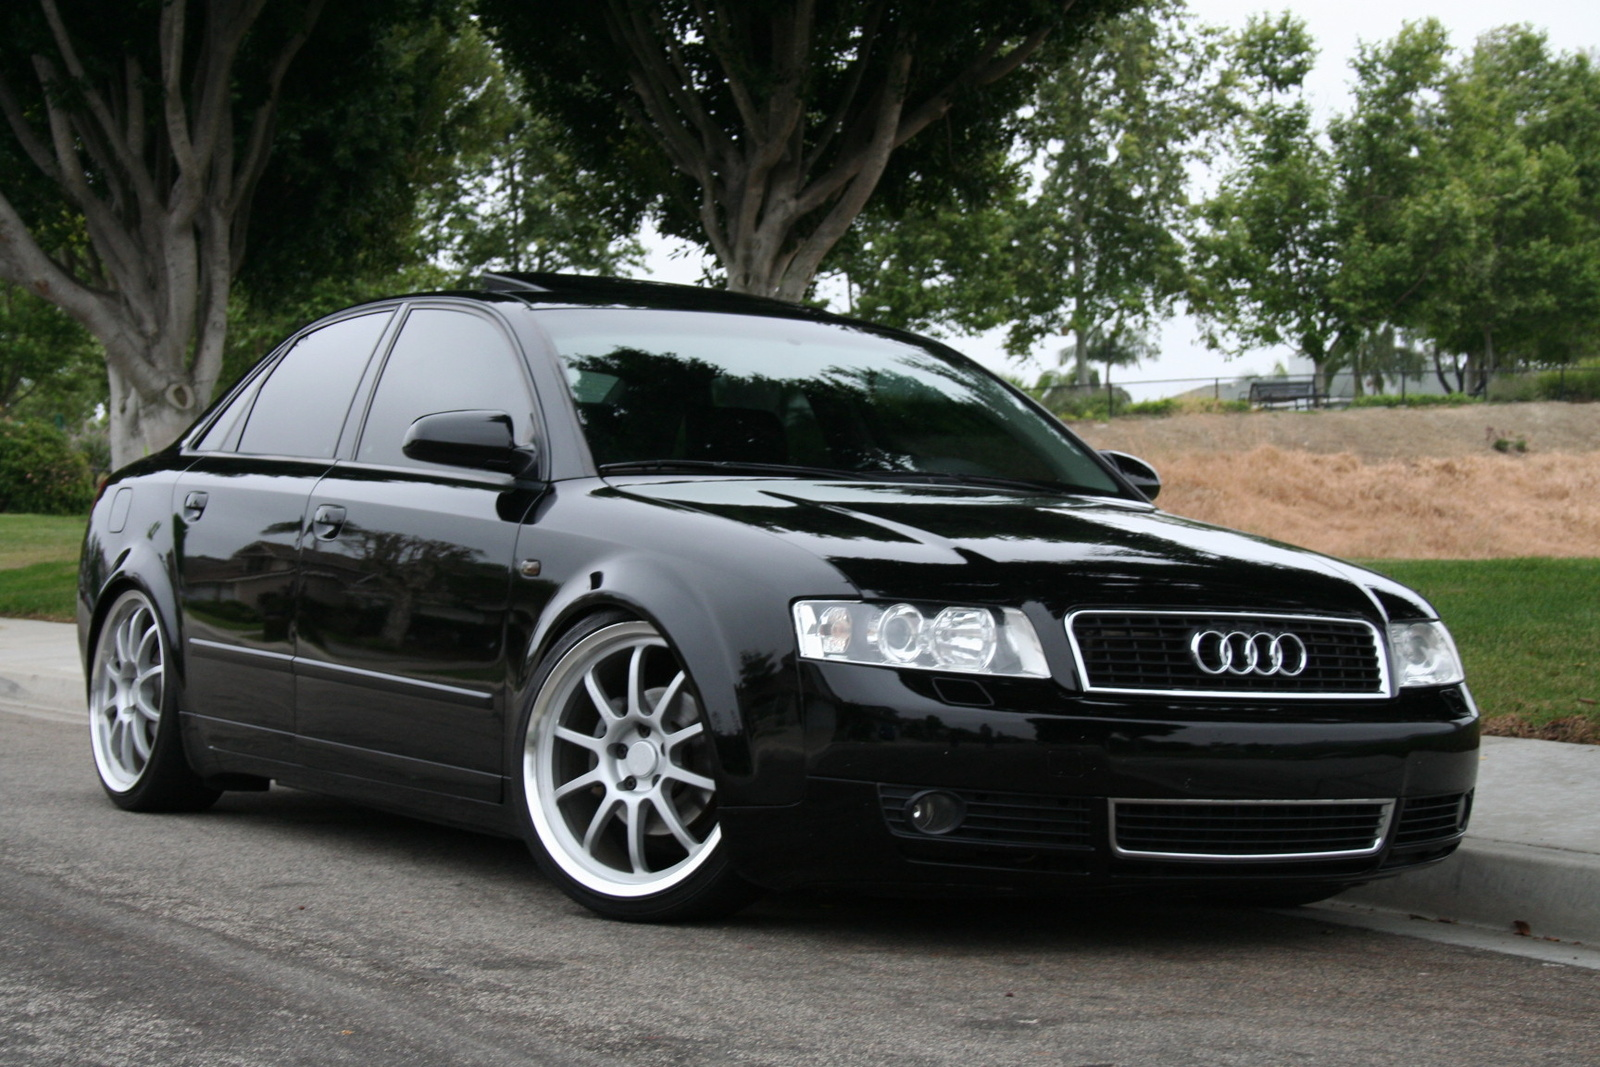 Audi a4 1 8t technical details history photos on better parts ltd